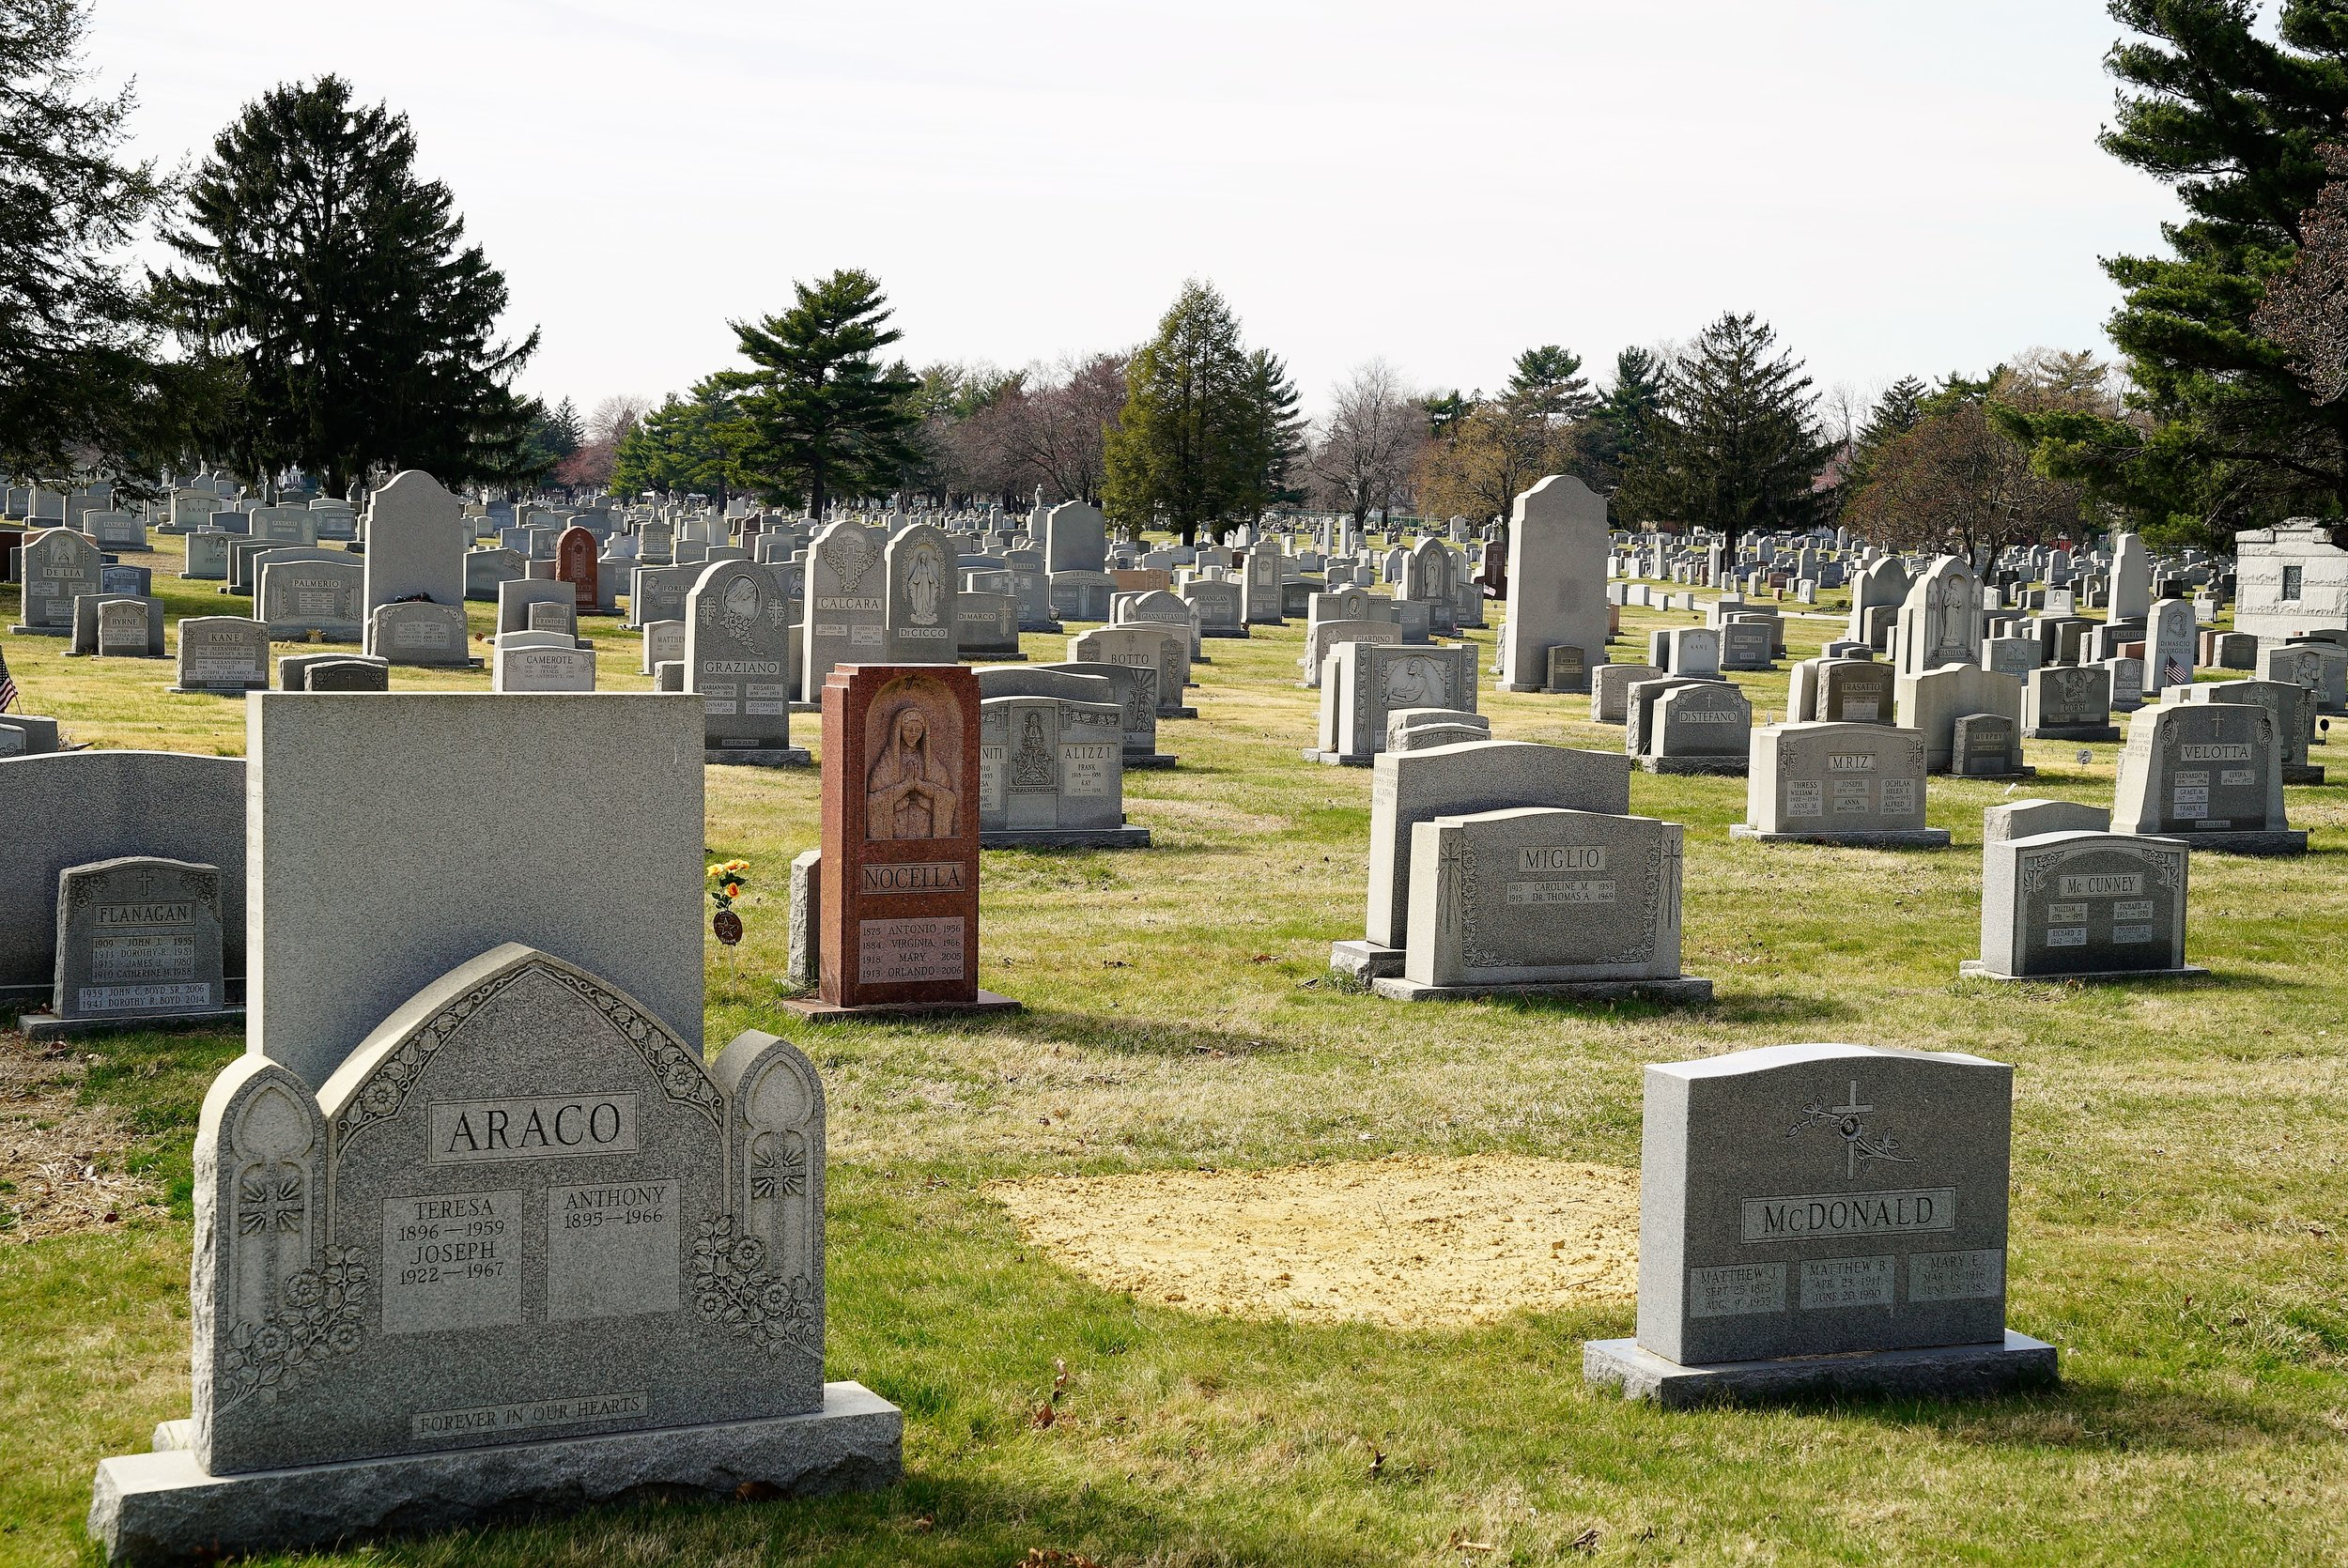 Photo: Holy Cross Cemetery in Yeadon, PA is very large.